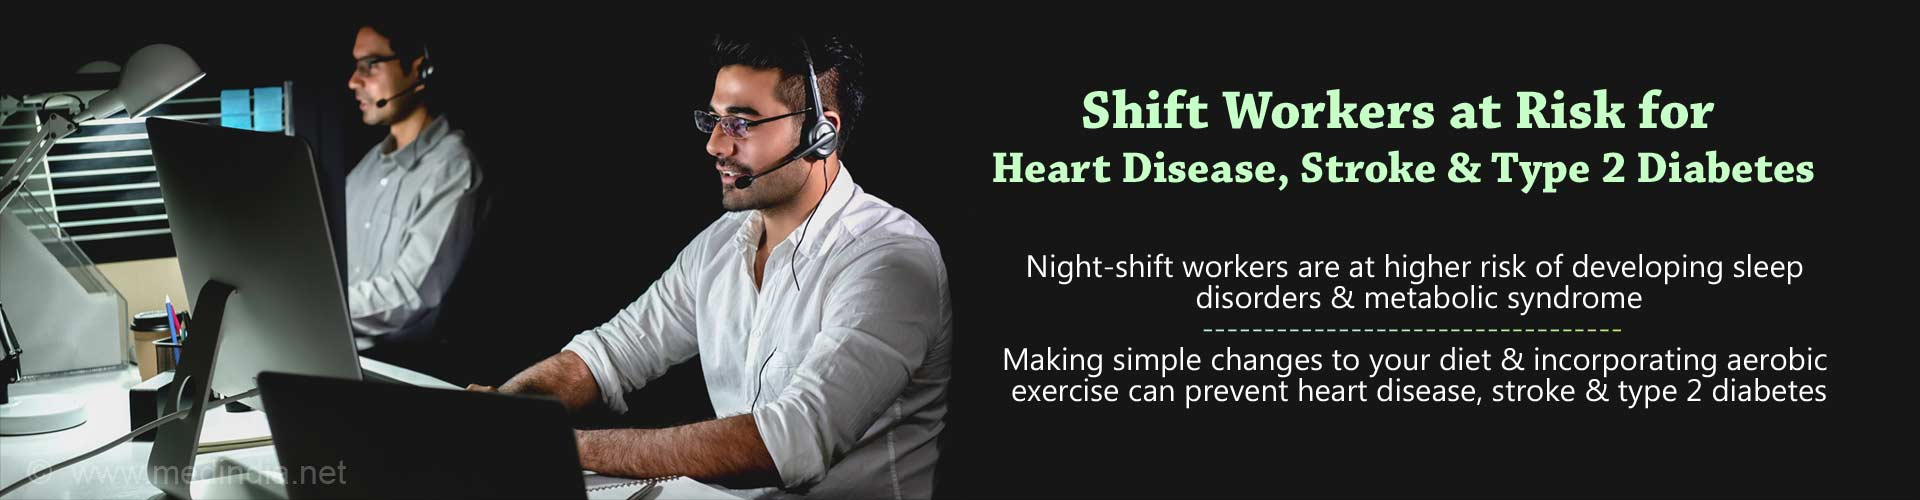 Night Shift Workers at Risk for Heart Disease, Stroke and Diabetes